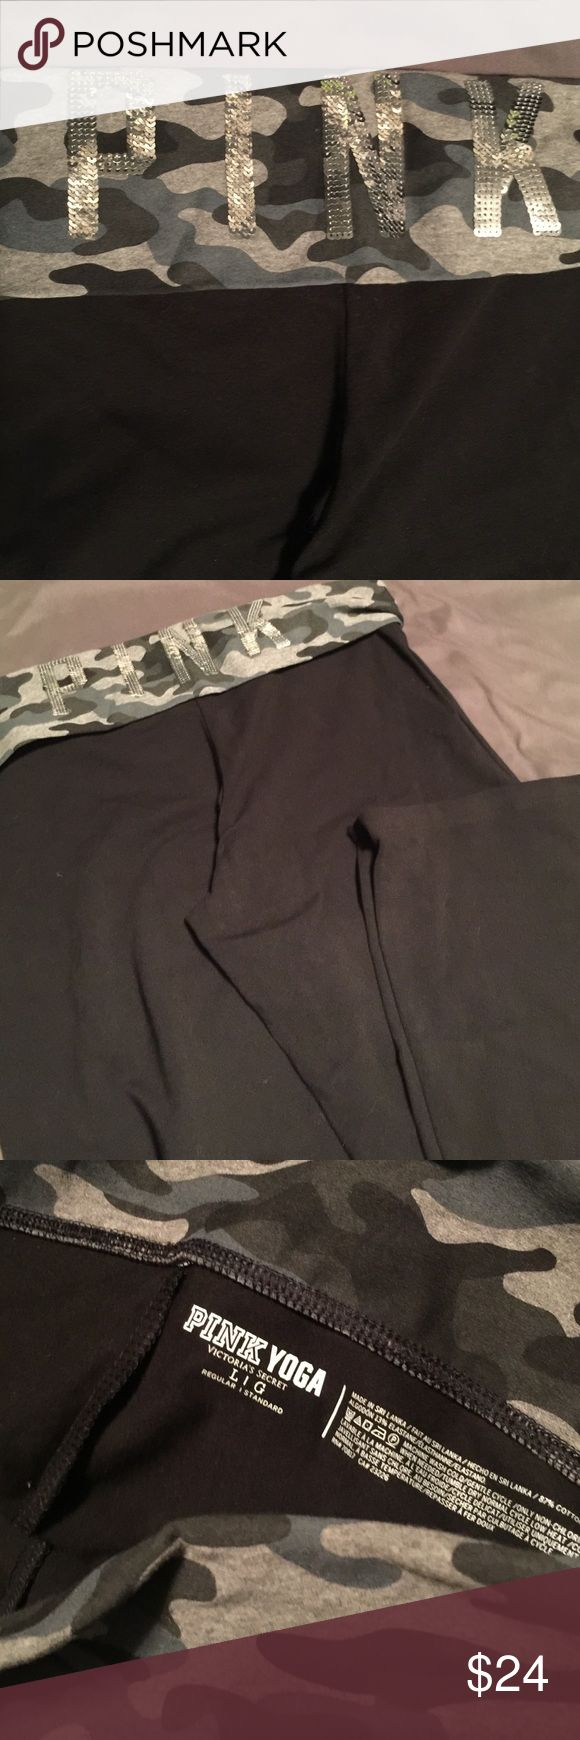 PINK By Victoria's Secret Bootcut Foldover Legging Size L PINK Camo Foldover bootcut leggings. You can't even find foldover bootcut leggings on PINK.com right now! Never been worn!!! PINK Victoria's Secret Pants Leggings